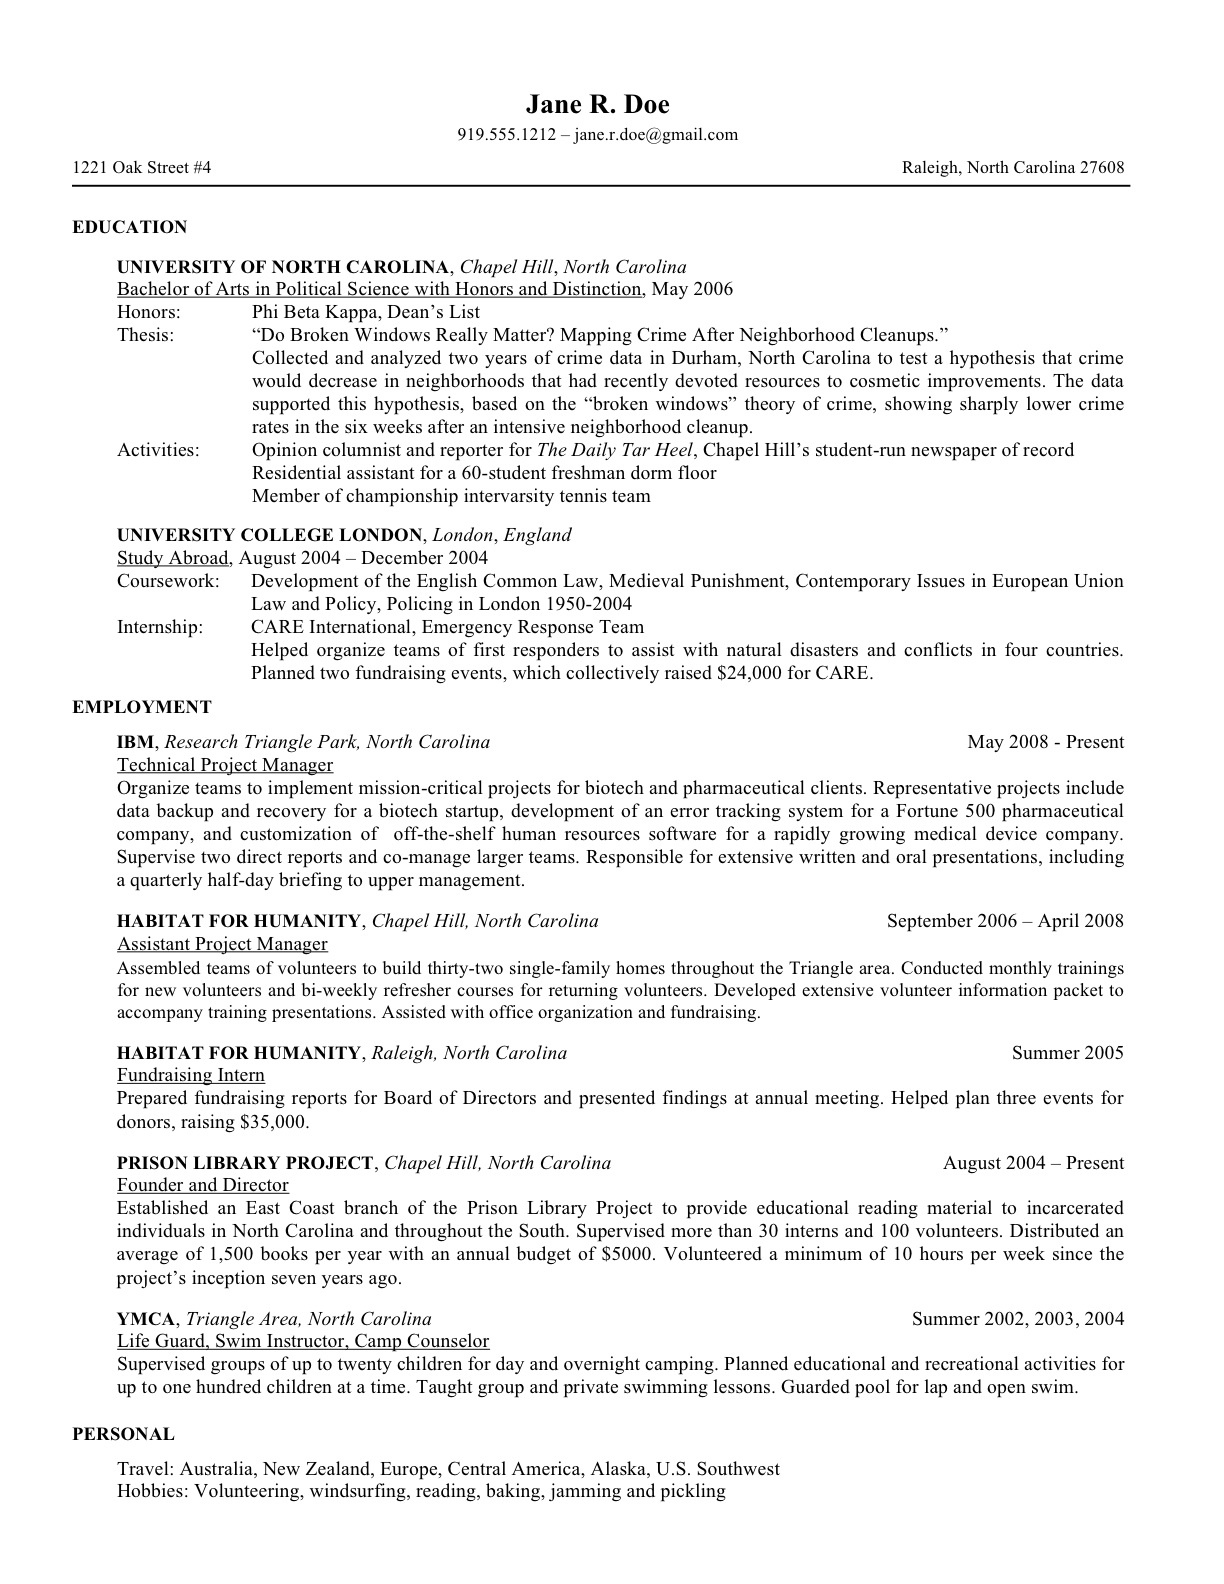 law school resume templates prepping your for of university at internship objective Resume Law Internship Resume Objective